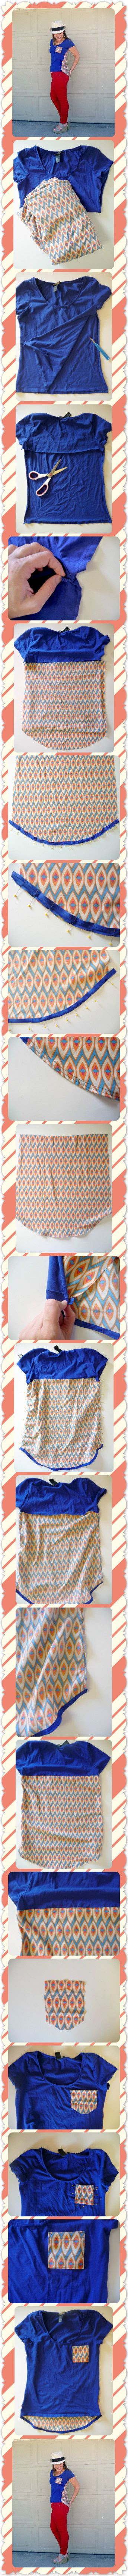 Anthropologie Pattern/Pop Tee Knock-Off Tutorial